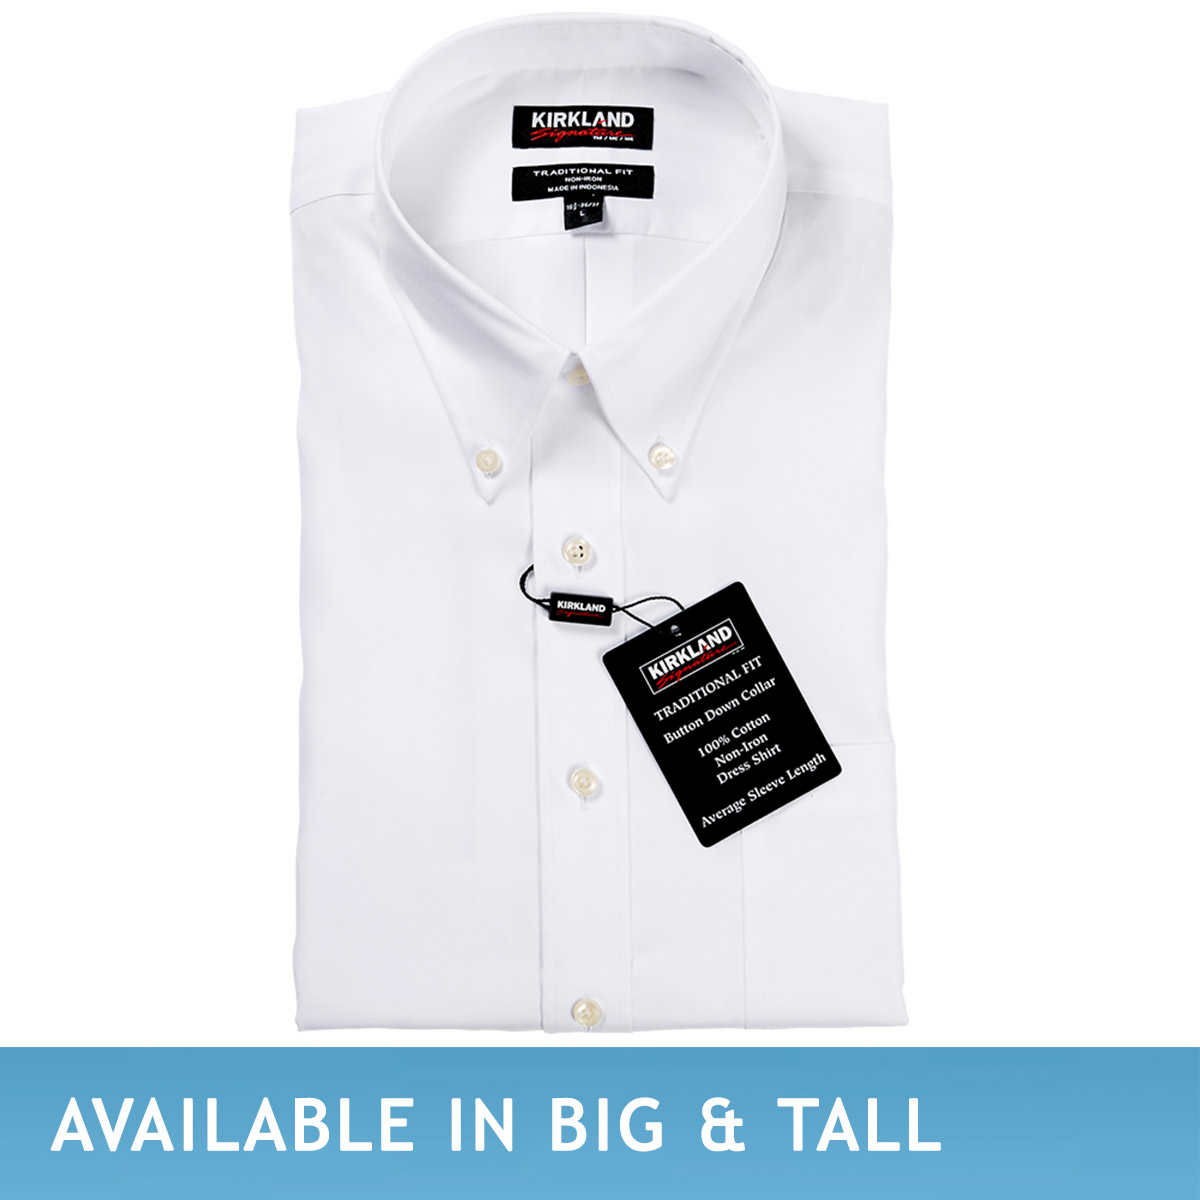 Kirkland black t shirts xl - Kirkland Signature Men S Button Down Dress Shirt White